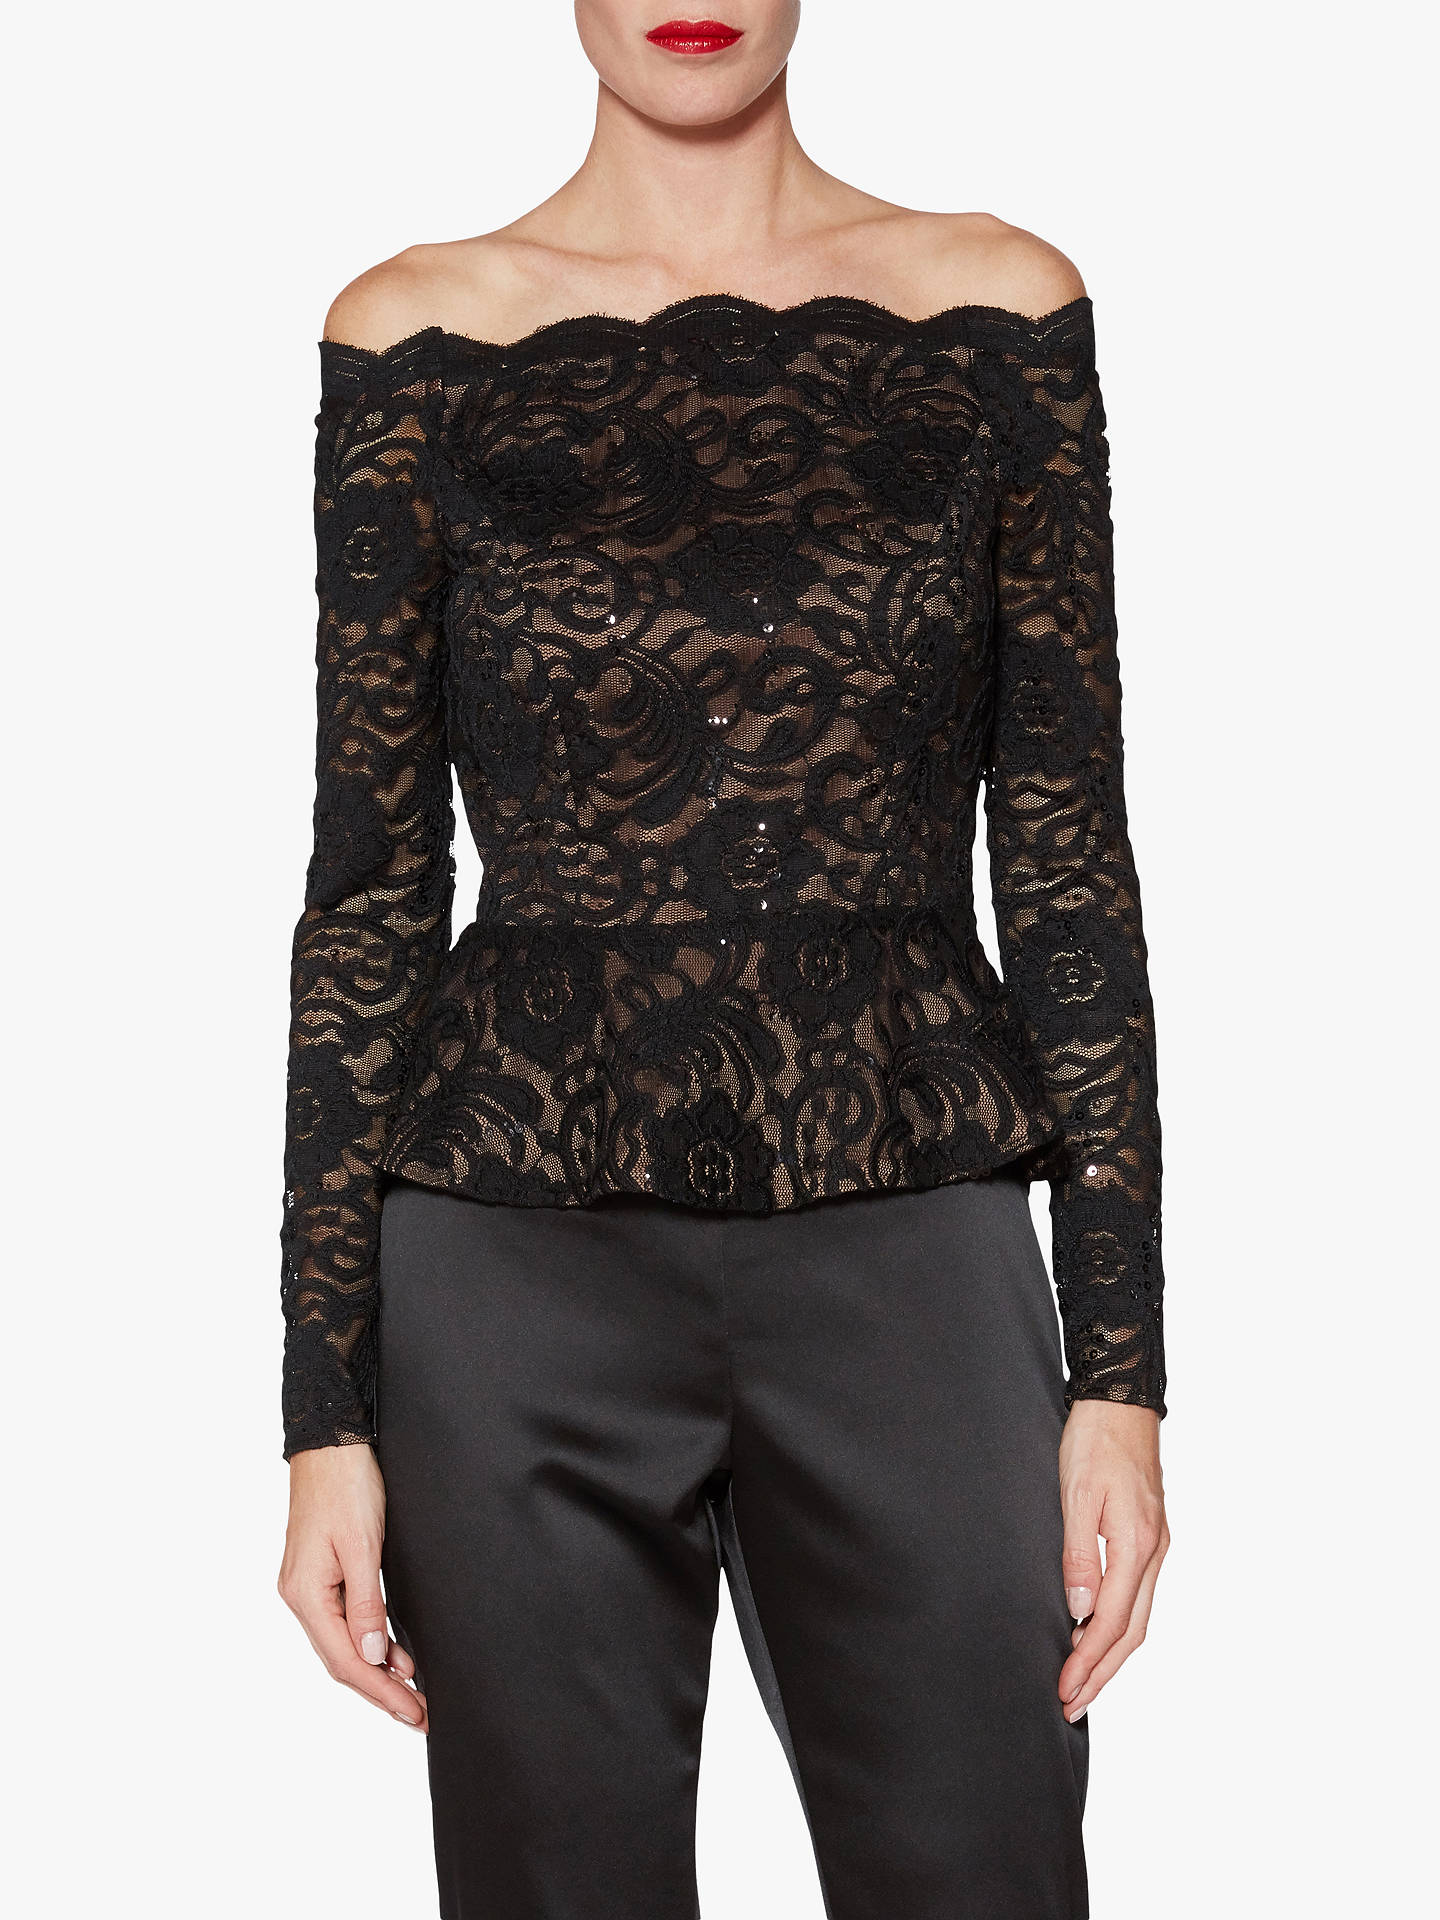 412b68c25d285d Buy Gina Bacconi Alivia Floral Lace Sequin Top, Black, 12 Online at  johnlewis.